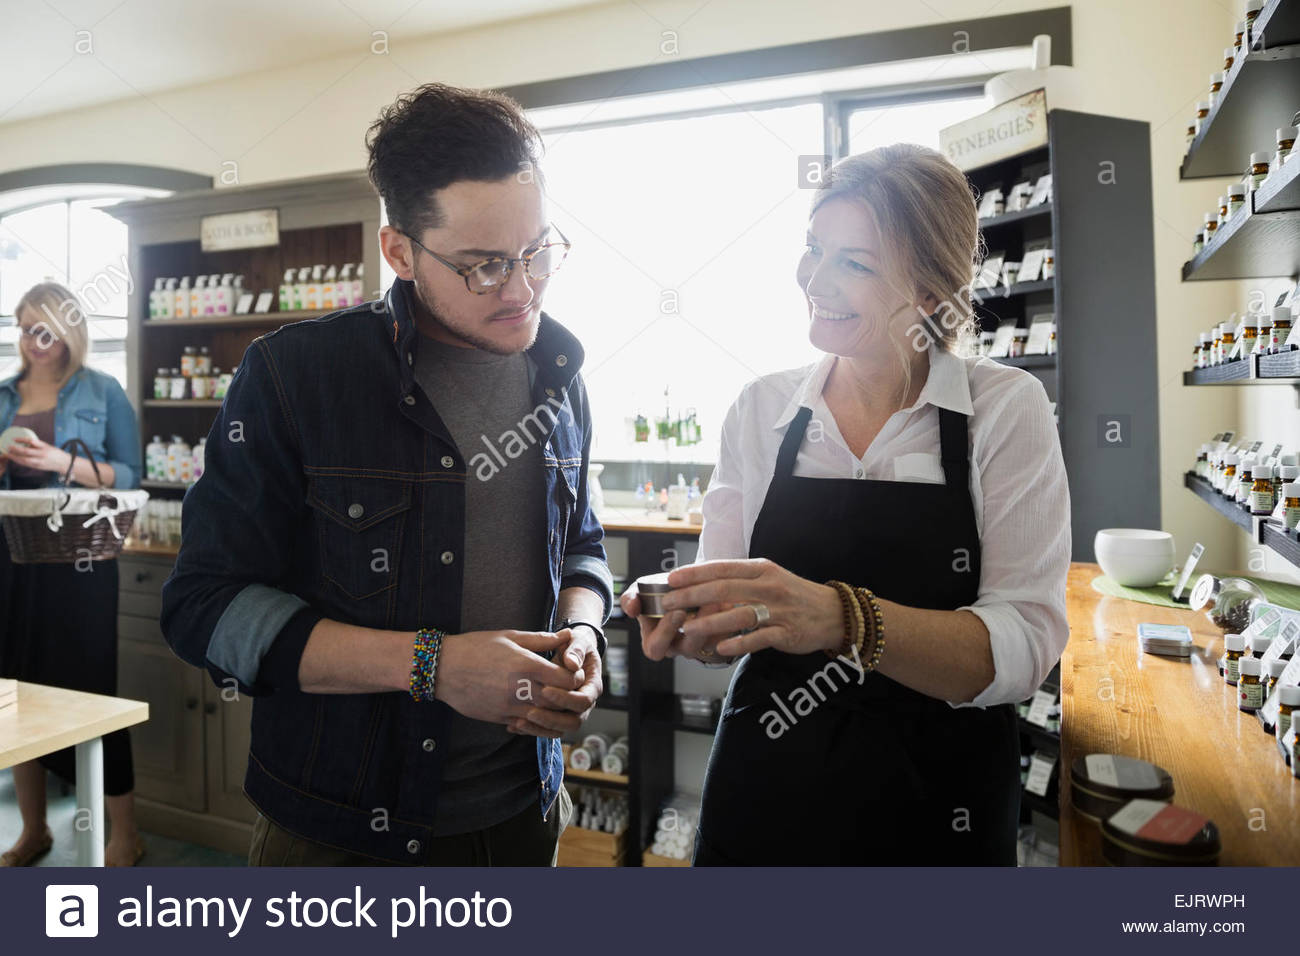 Apothecary shop owner helping man - Stock Image